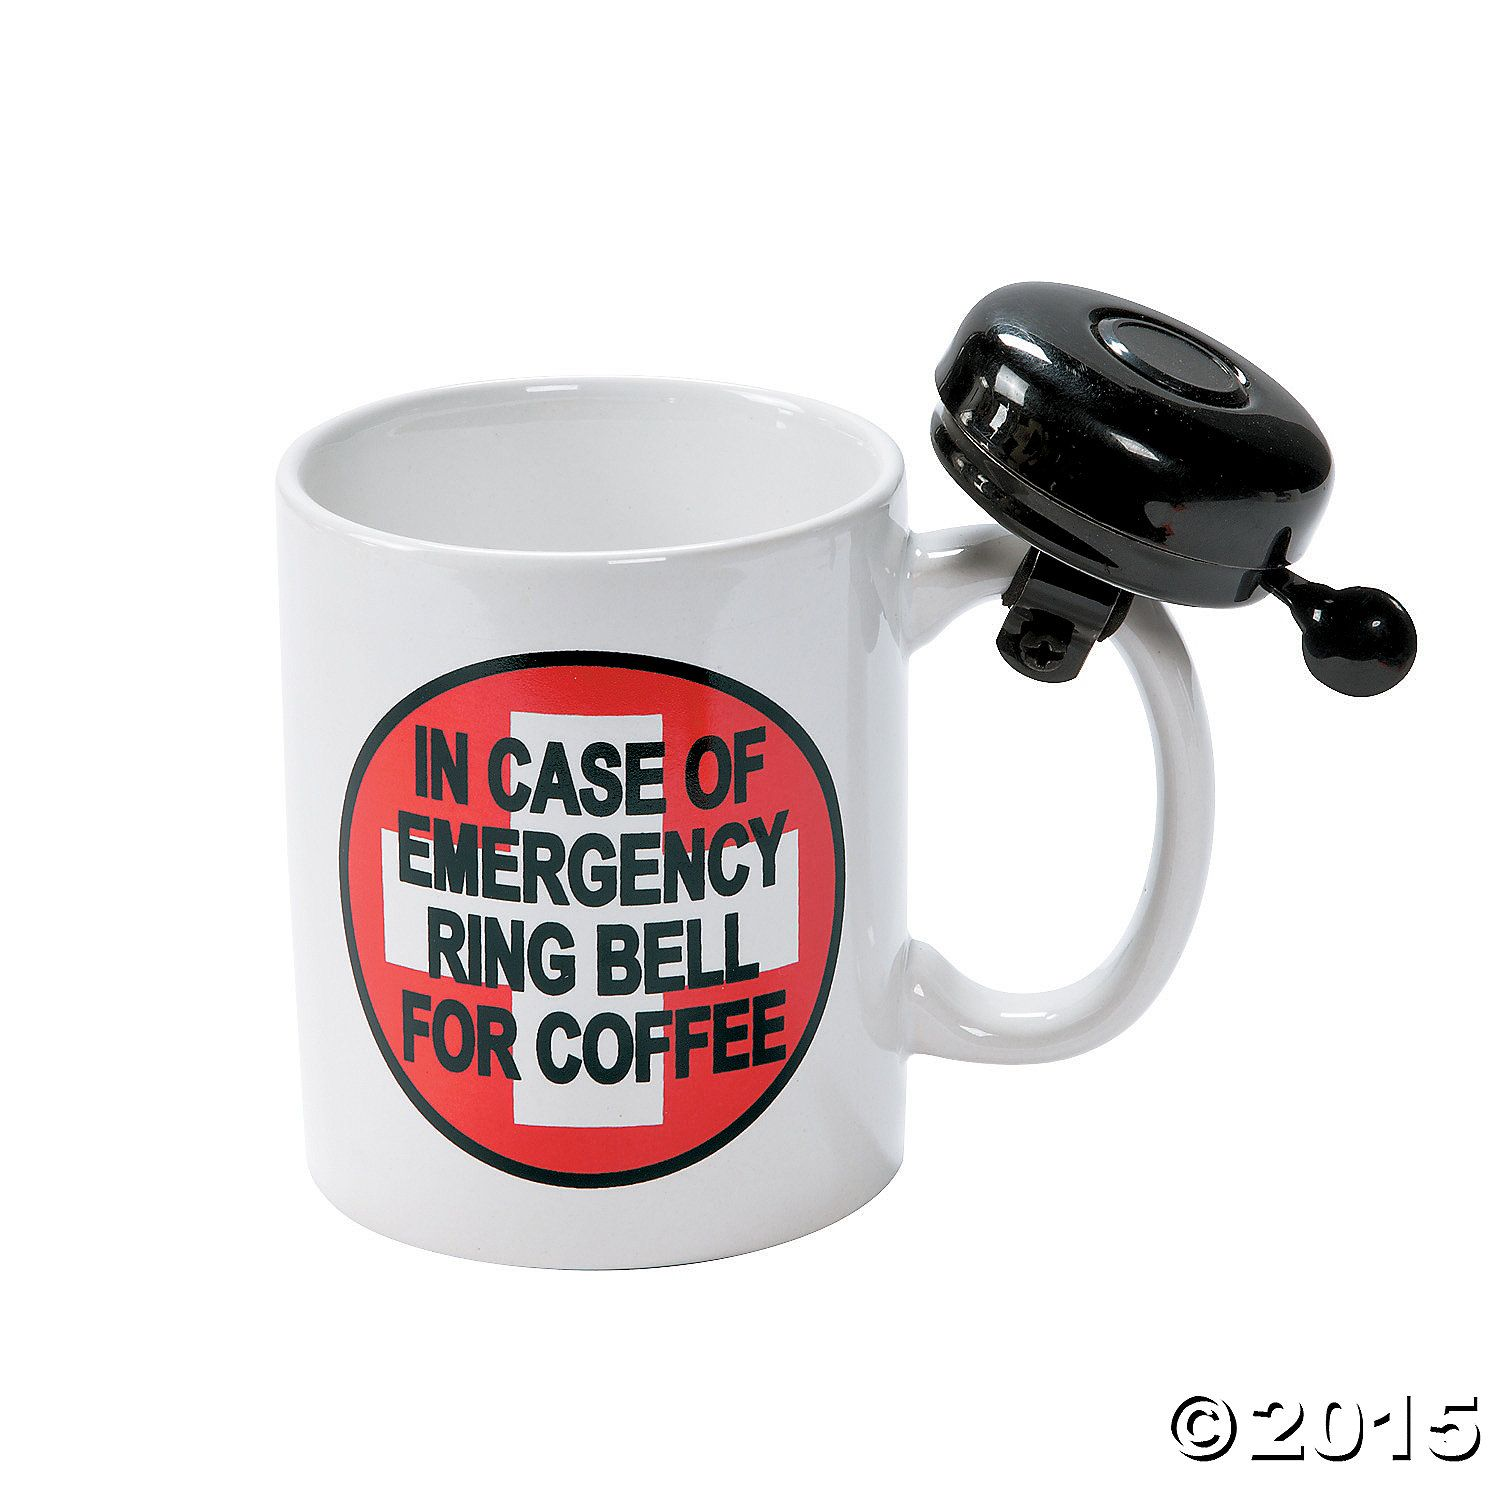 Nyata talk: He's going to have way too much fun ringing that bell. All. Day. Long. Oriental Trading, $8.25